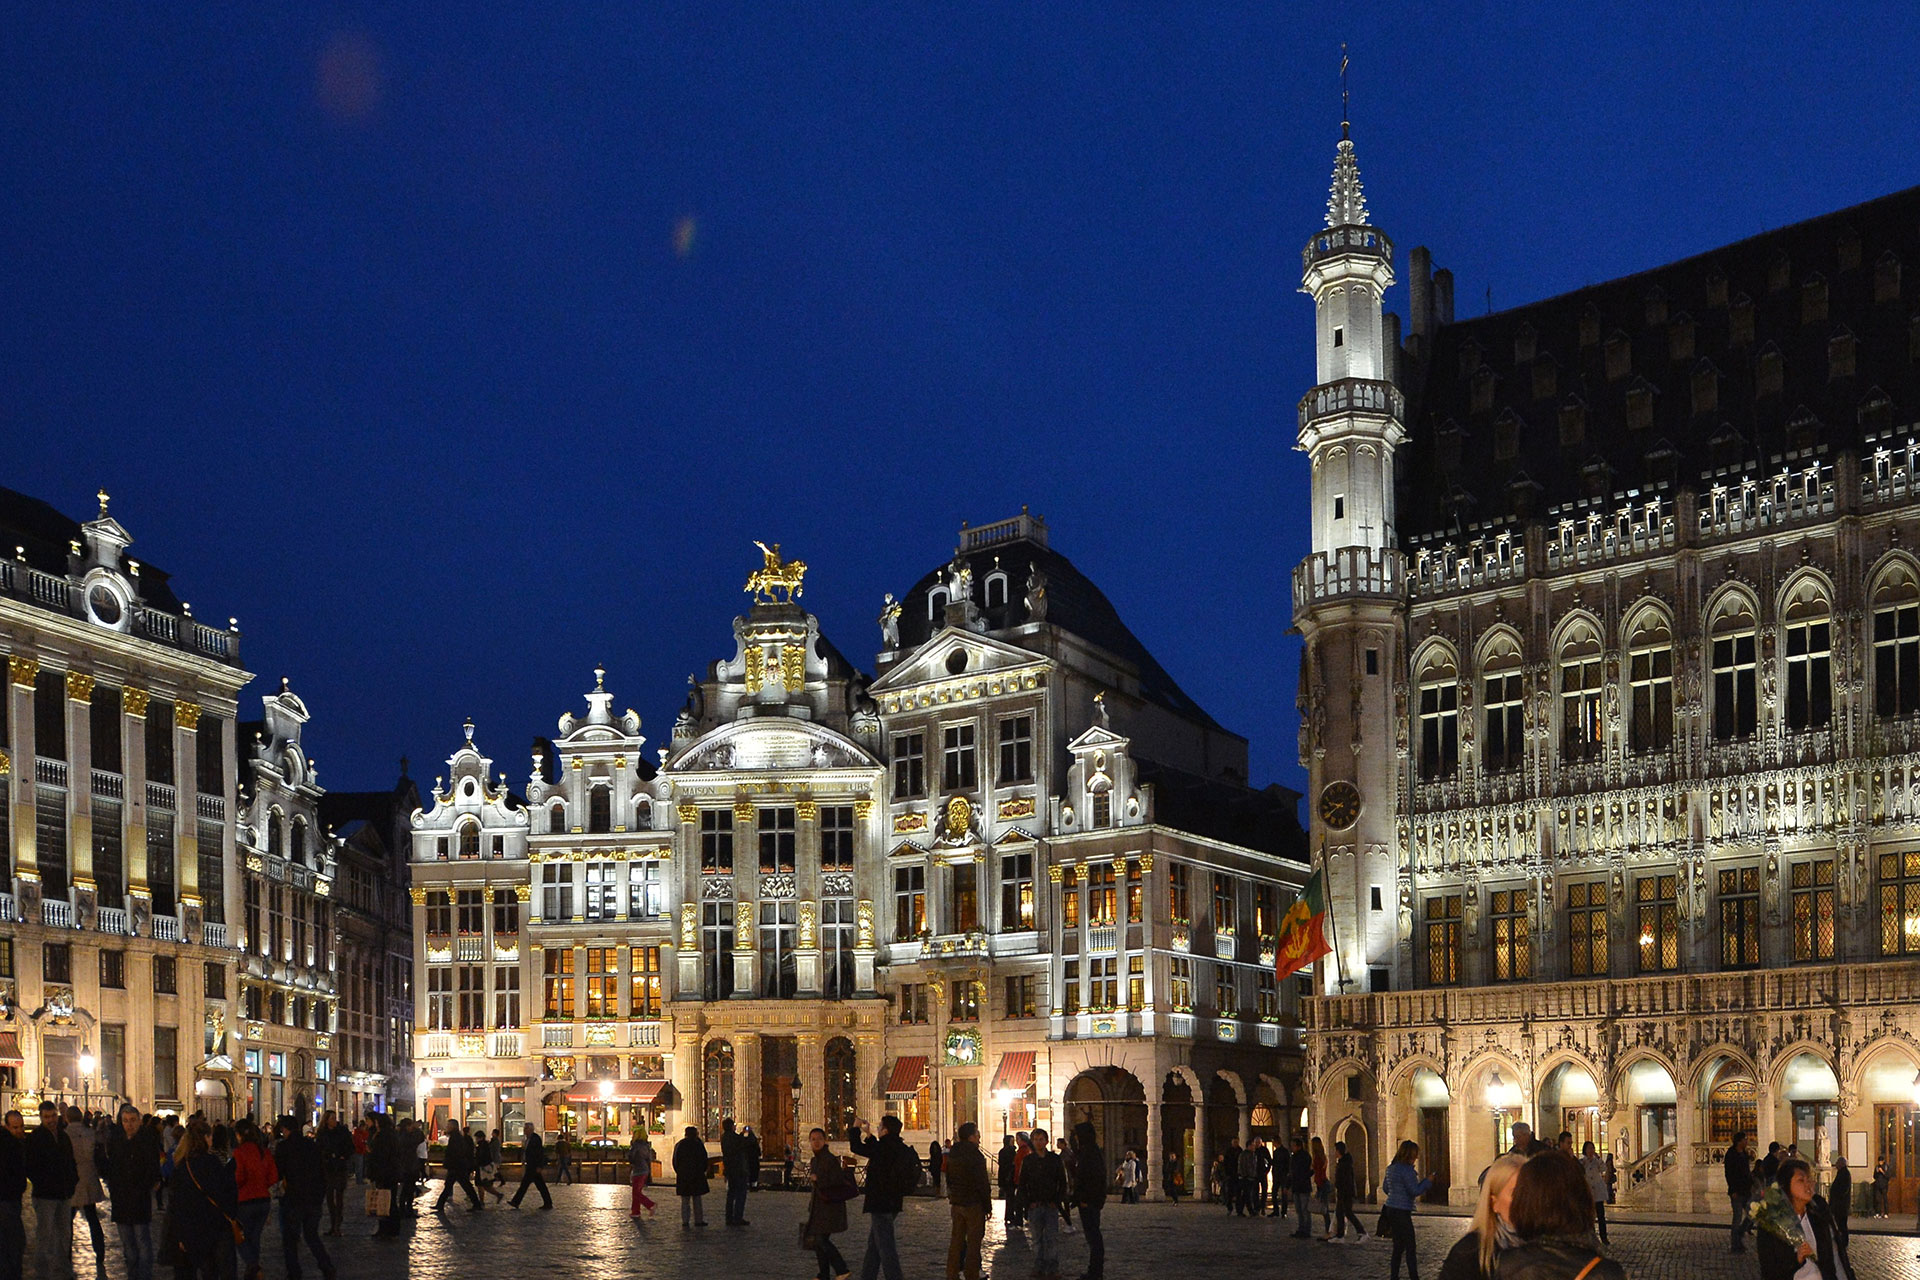 White light bathes the façades of Grand Place, highlighting their intricate architectural details